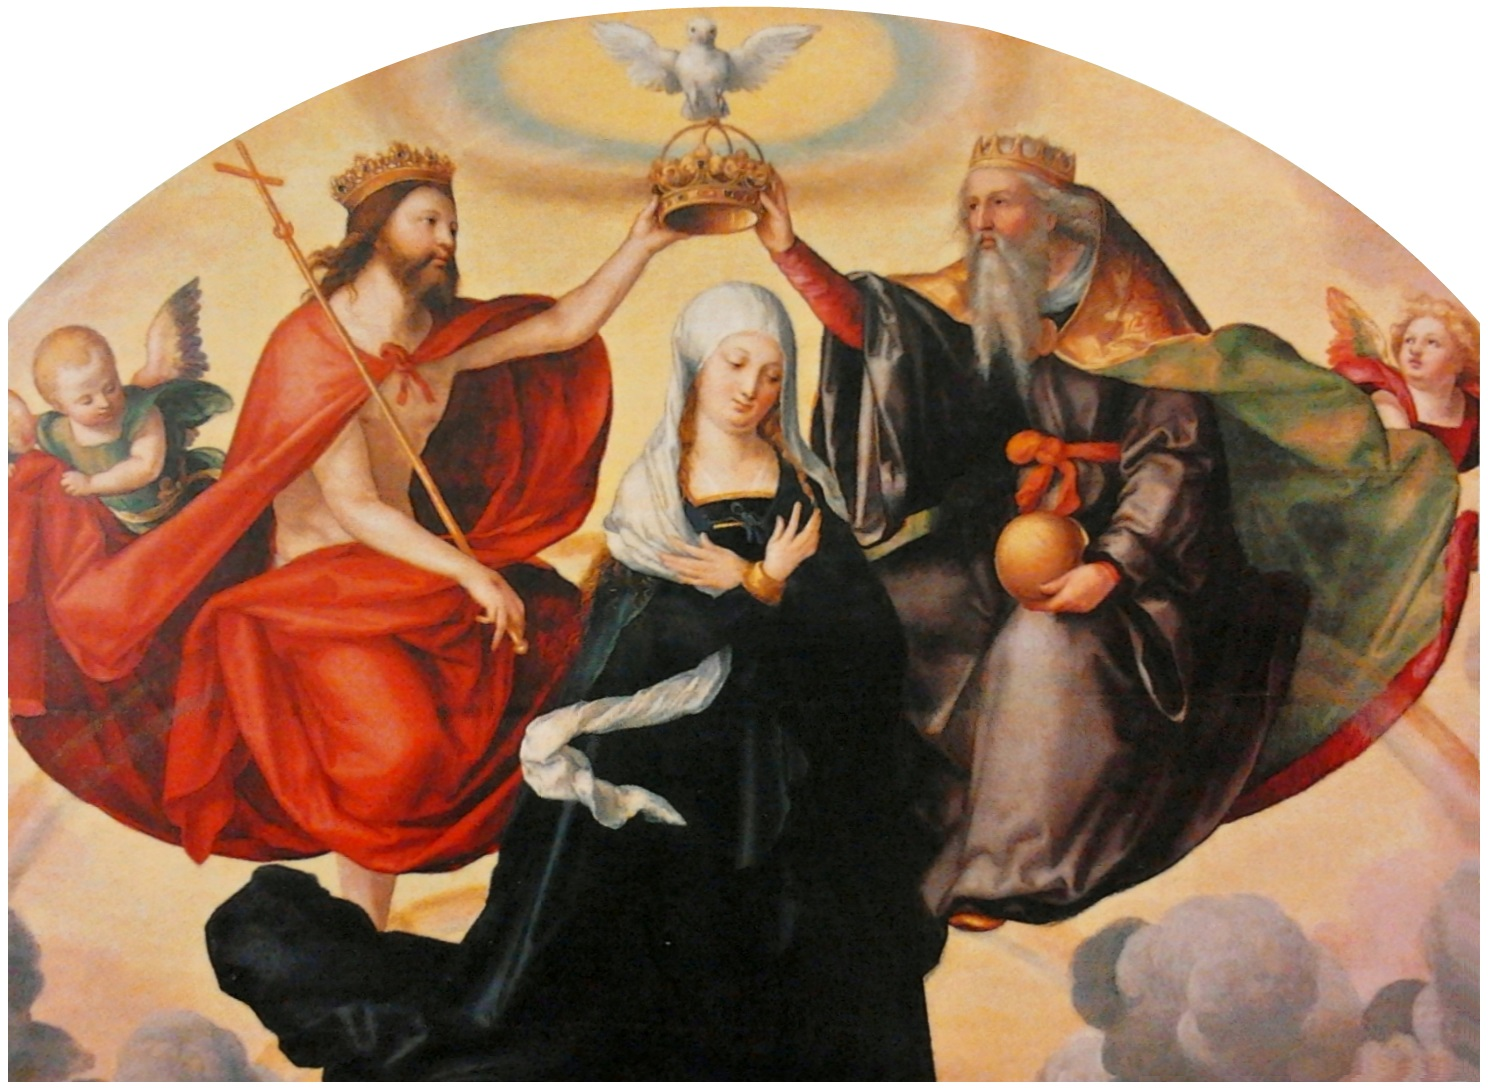 Pencz Coronation of the Virgin Mary